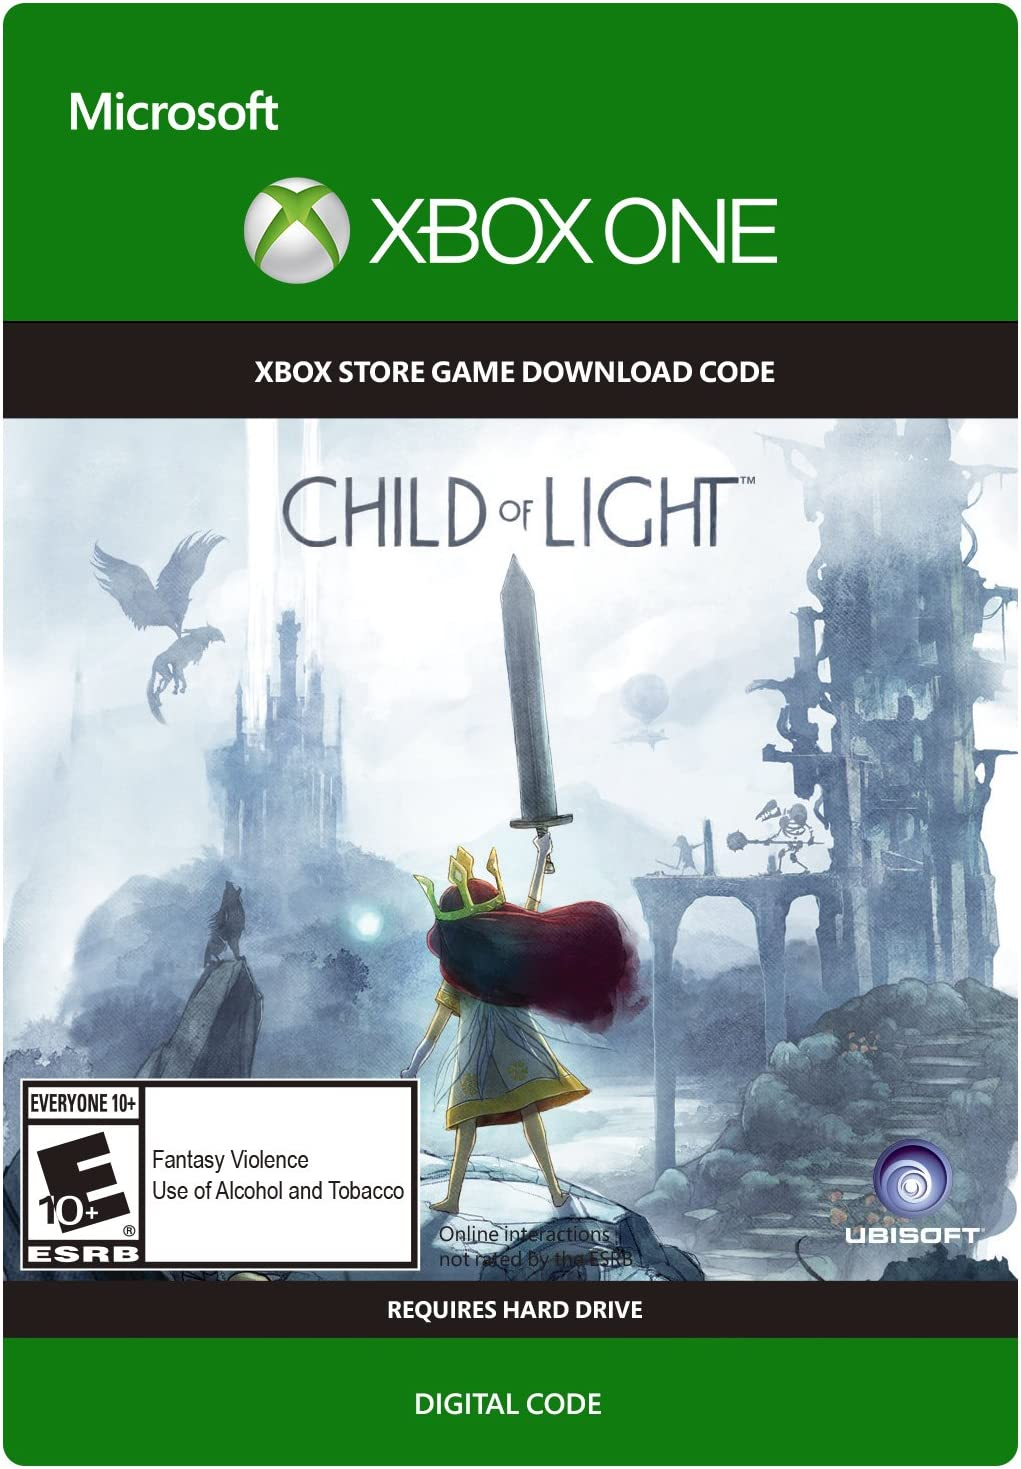 Amazon.com: Child of Light - Xbox One Digital Code: Video Games